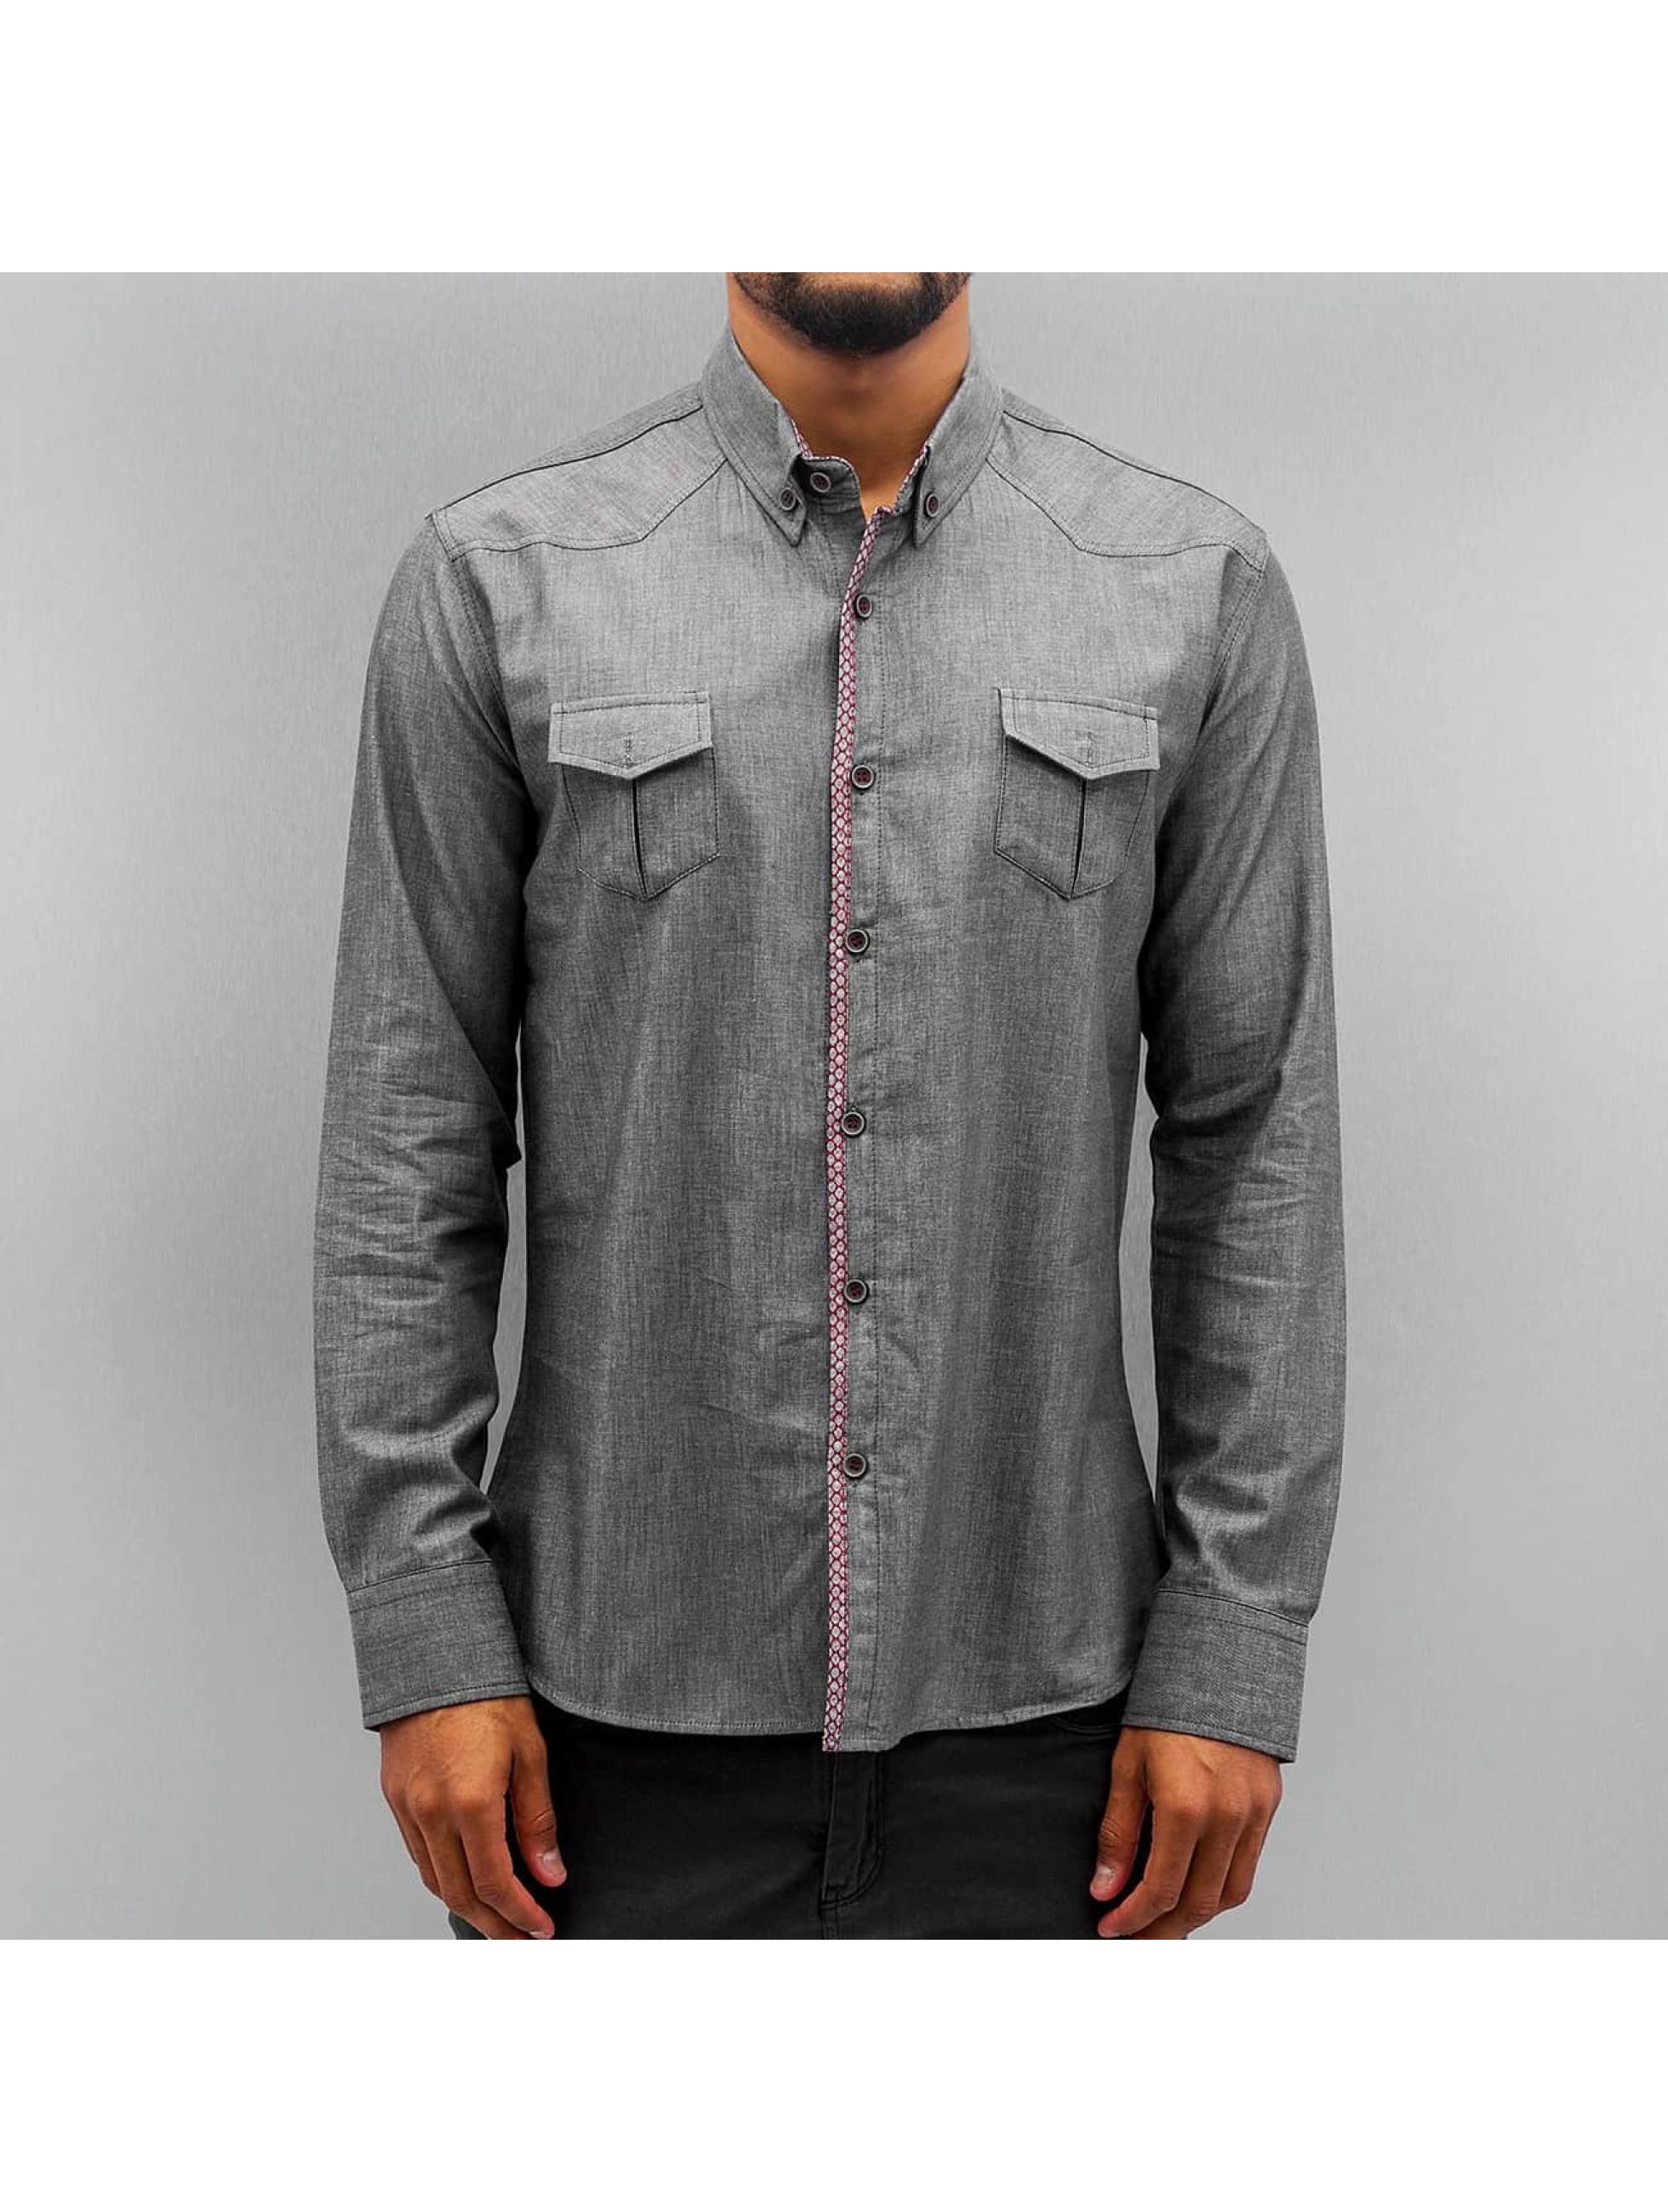 Open Shirt Breast Pocket indigo